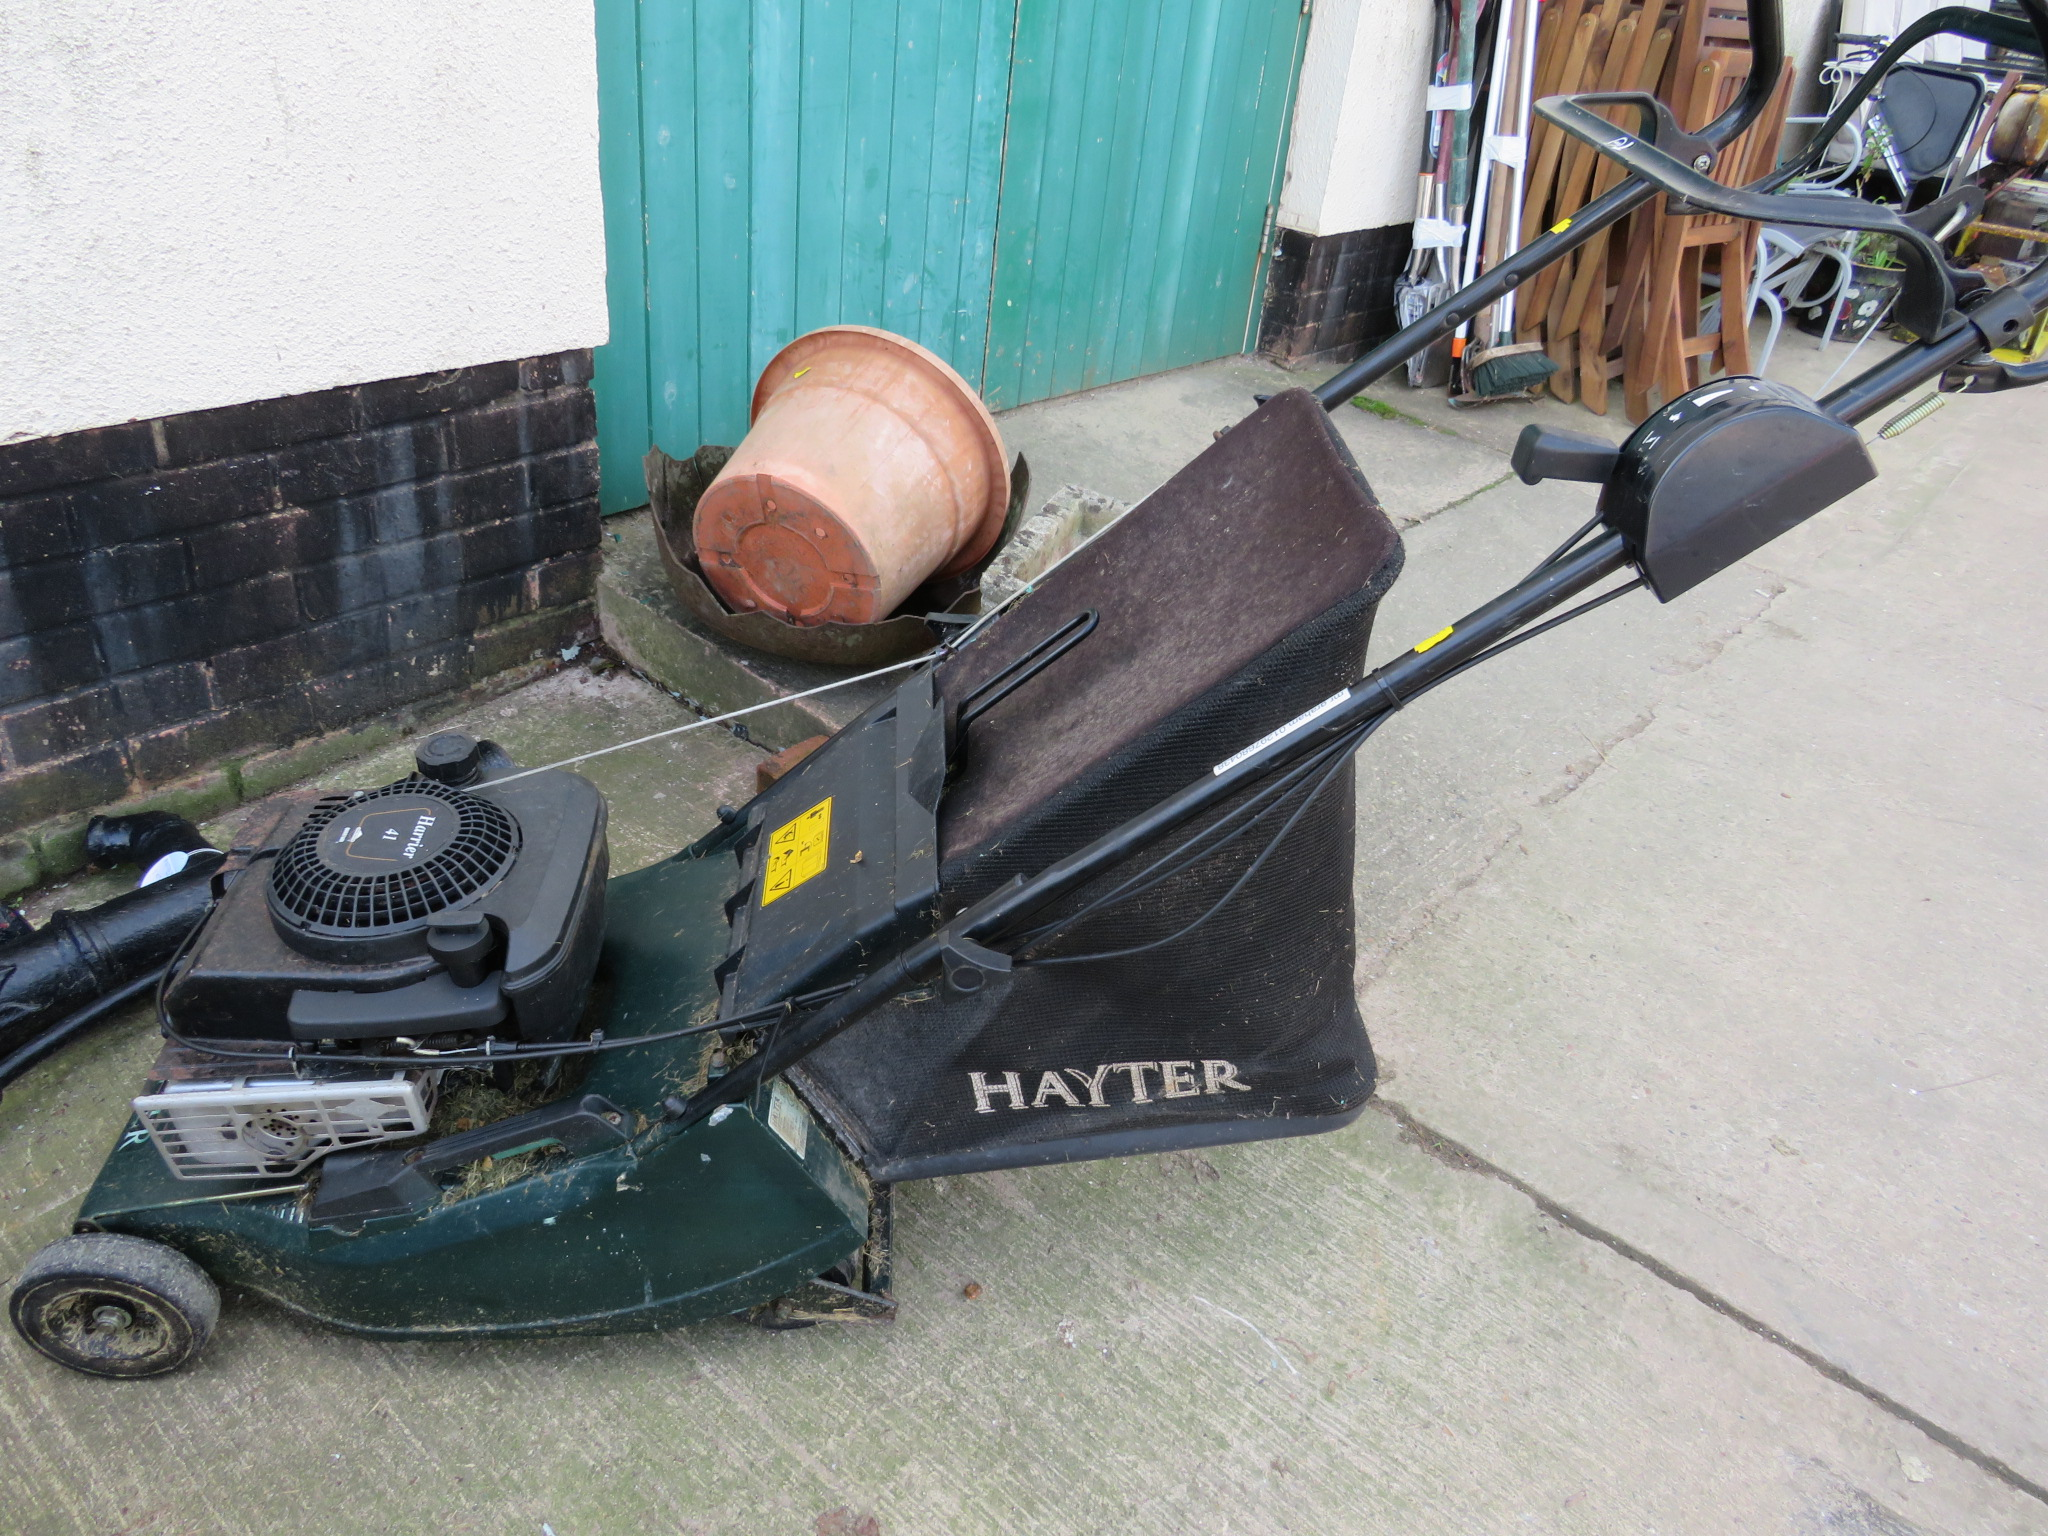 Lot 36 - HAYTER HARRIER 41 LAWNMOWER WITH BRIGGS AND STRATTON QUANTUM PETROL ENGINE